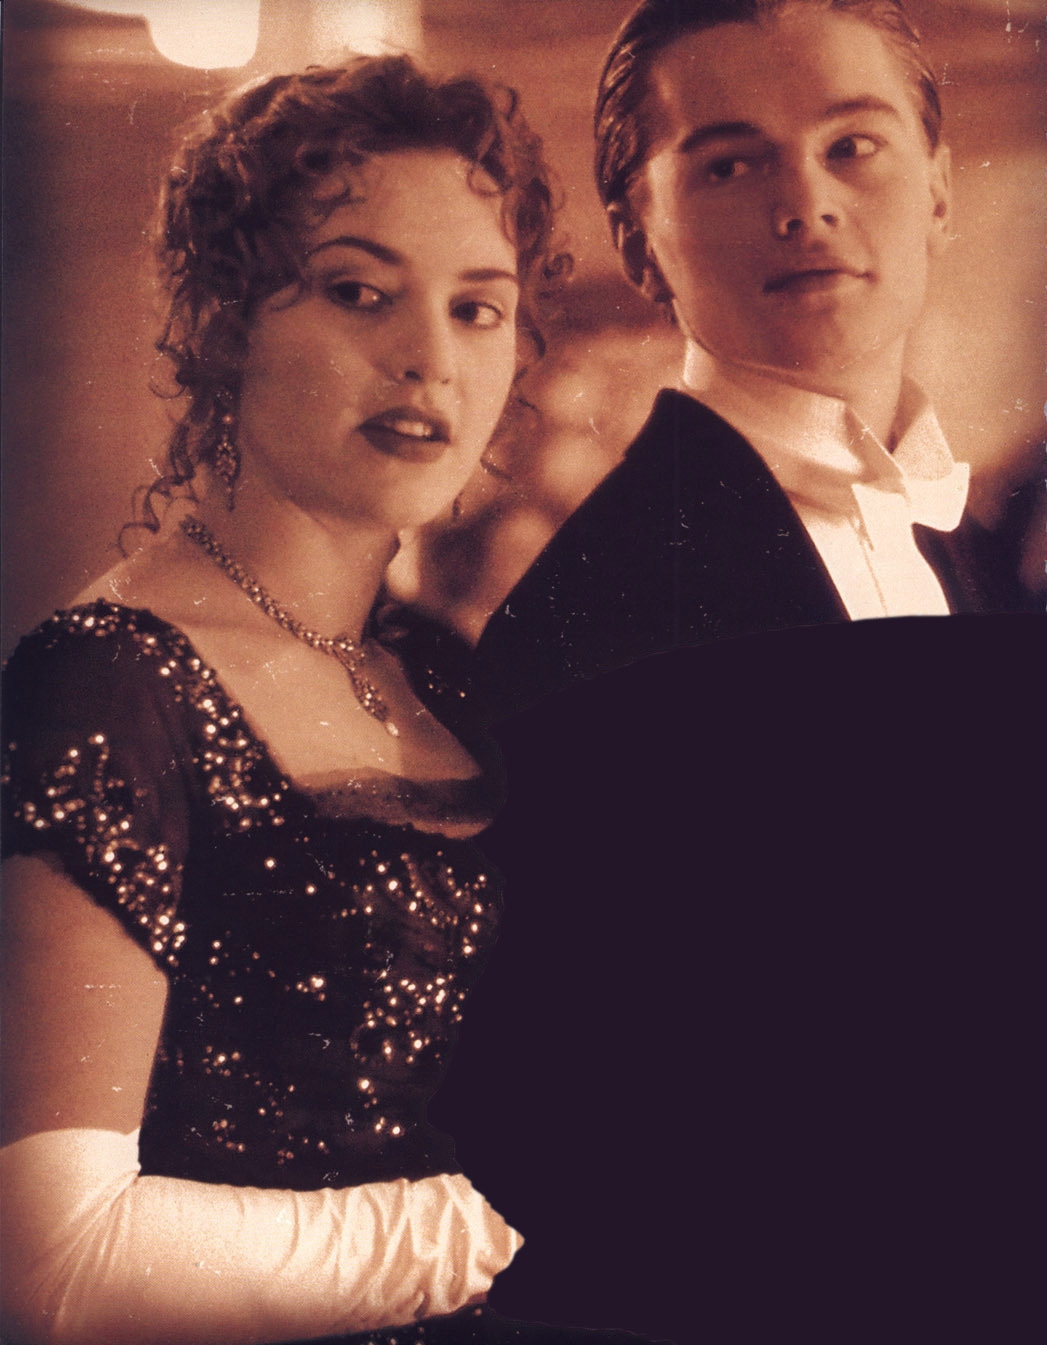 Semiri titanic - Jack and rose pics ...